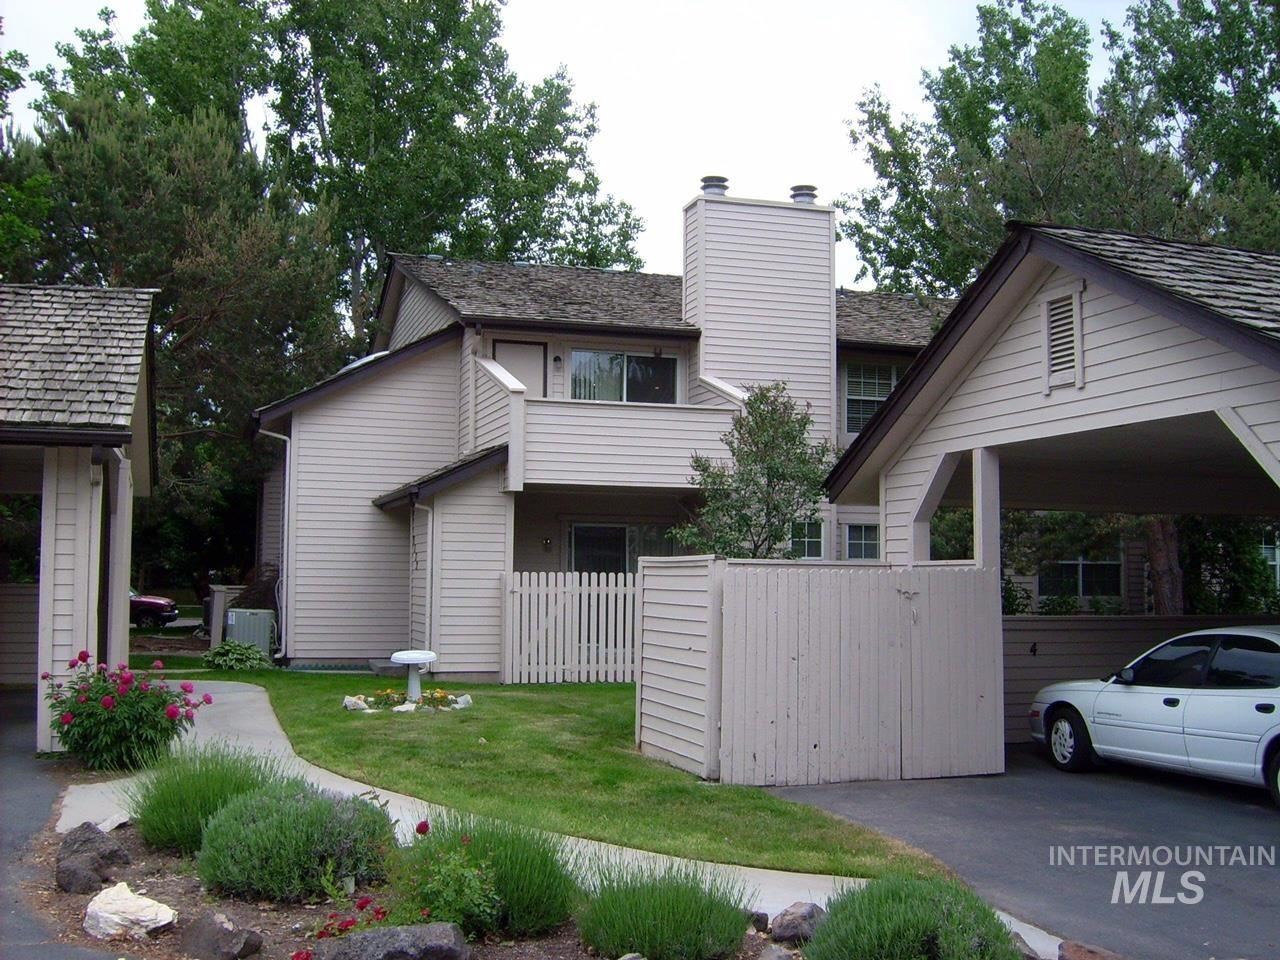 3172 S Gekeler Ln Property Photo - Boise, ID real estate listing